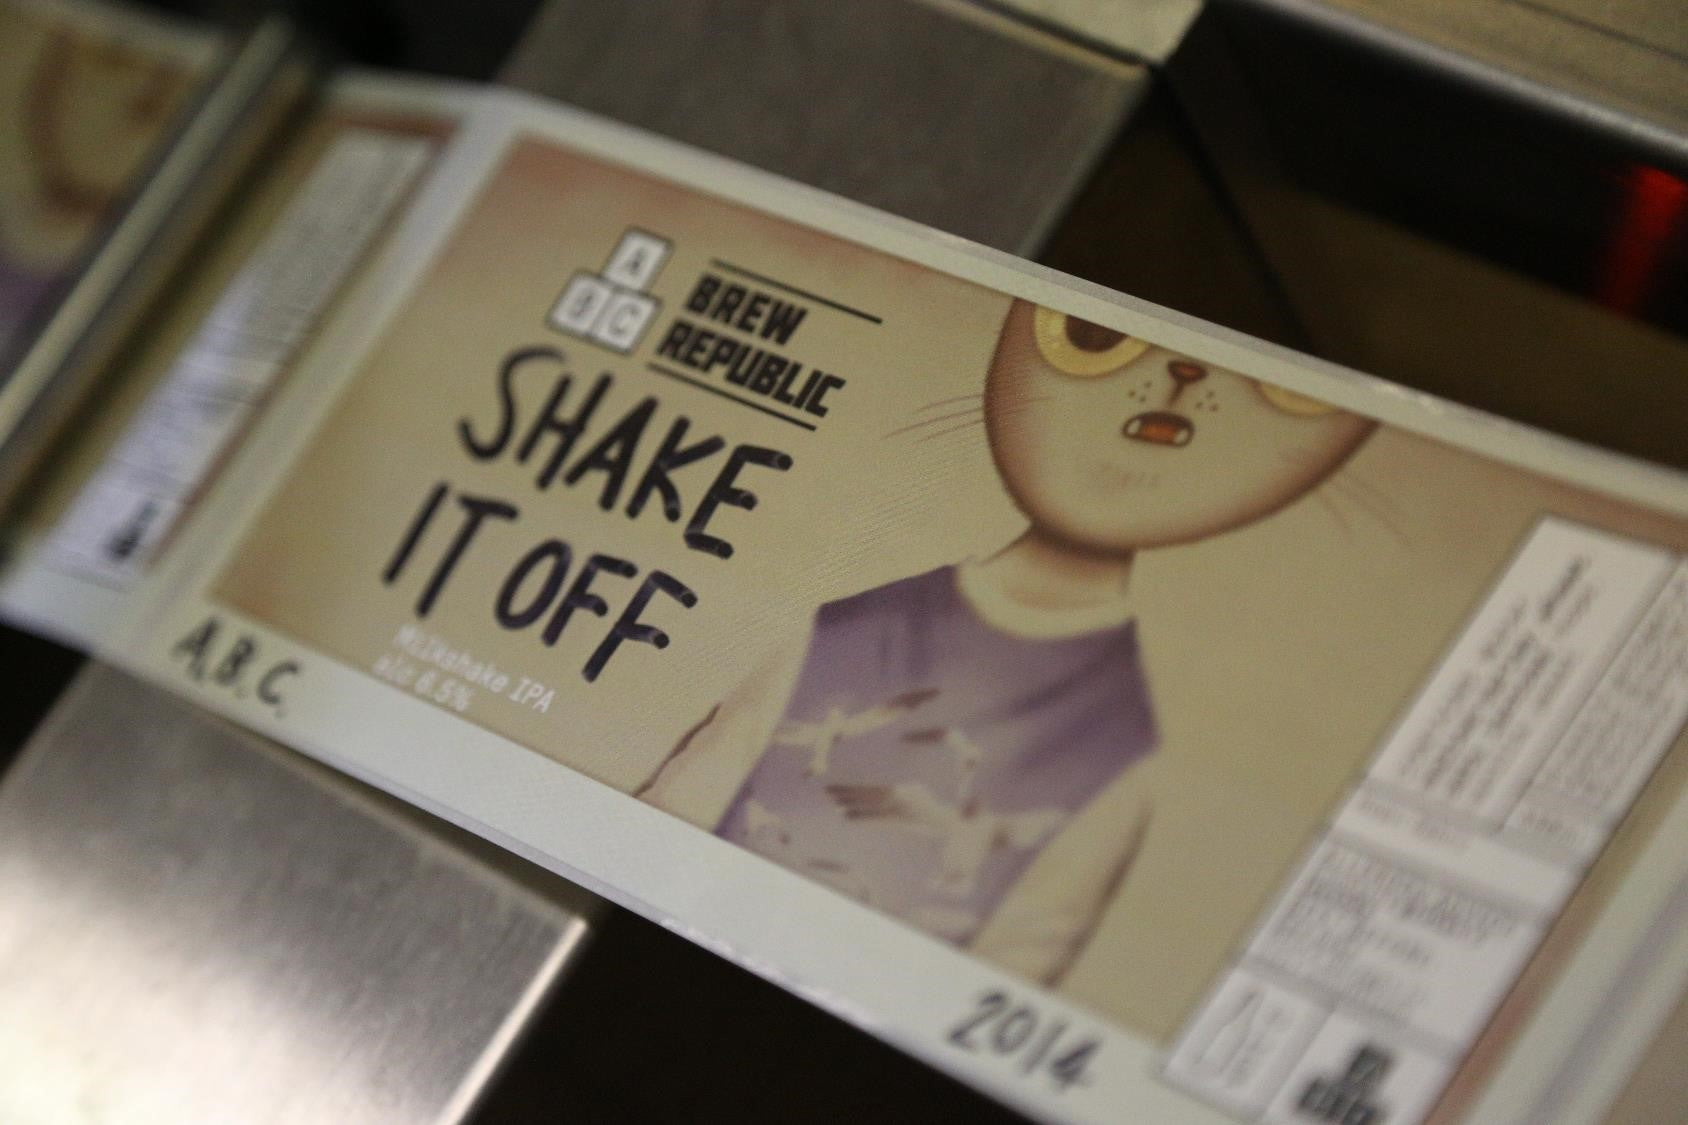 Alphabet x Brew Republic Colla - Shake it Off craft beer can art